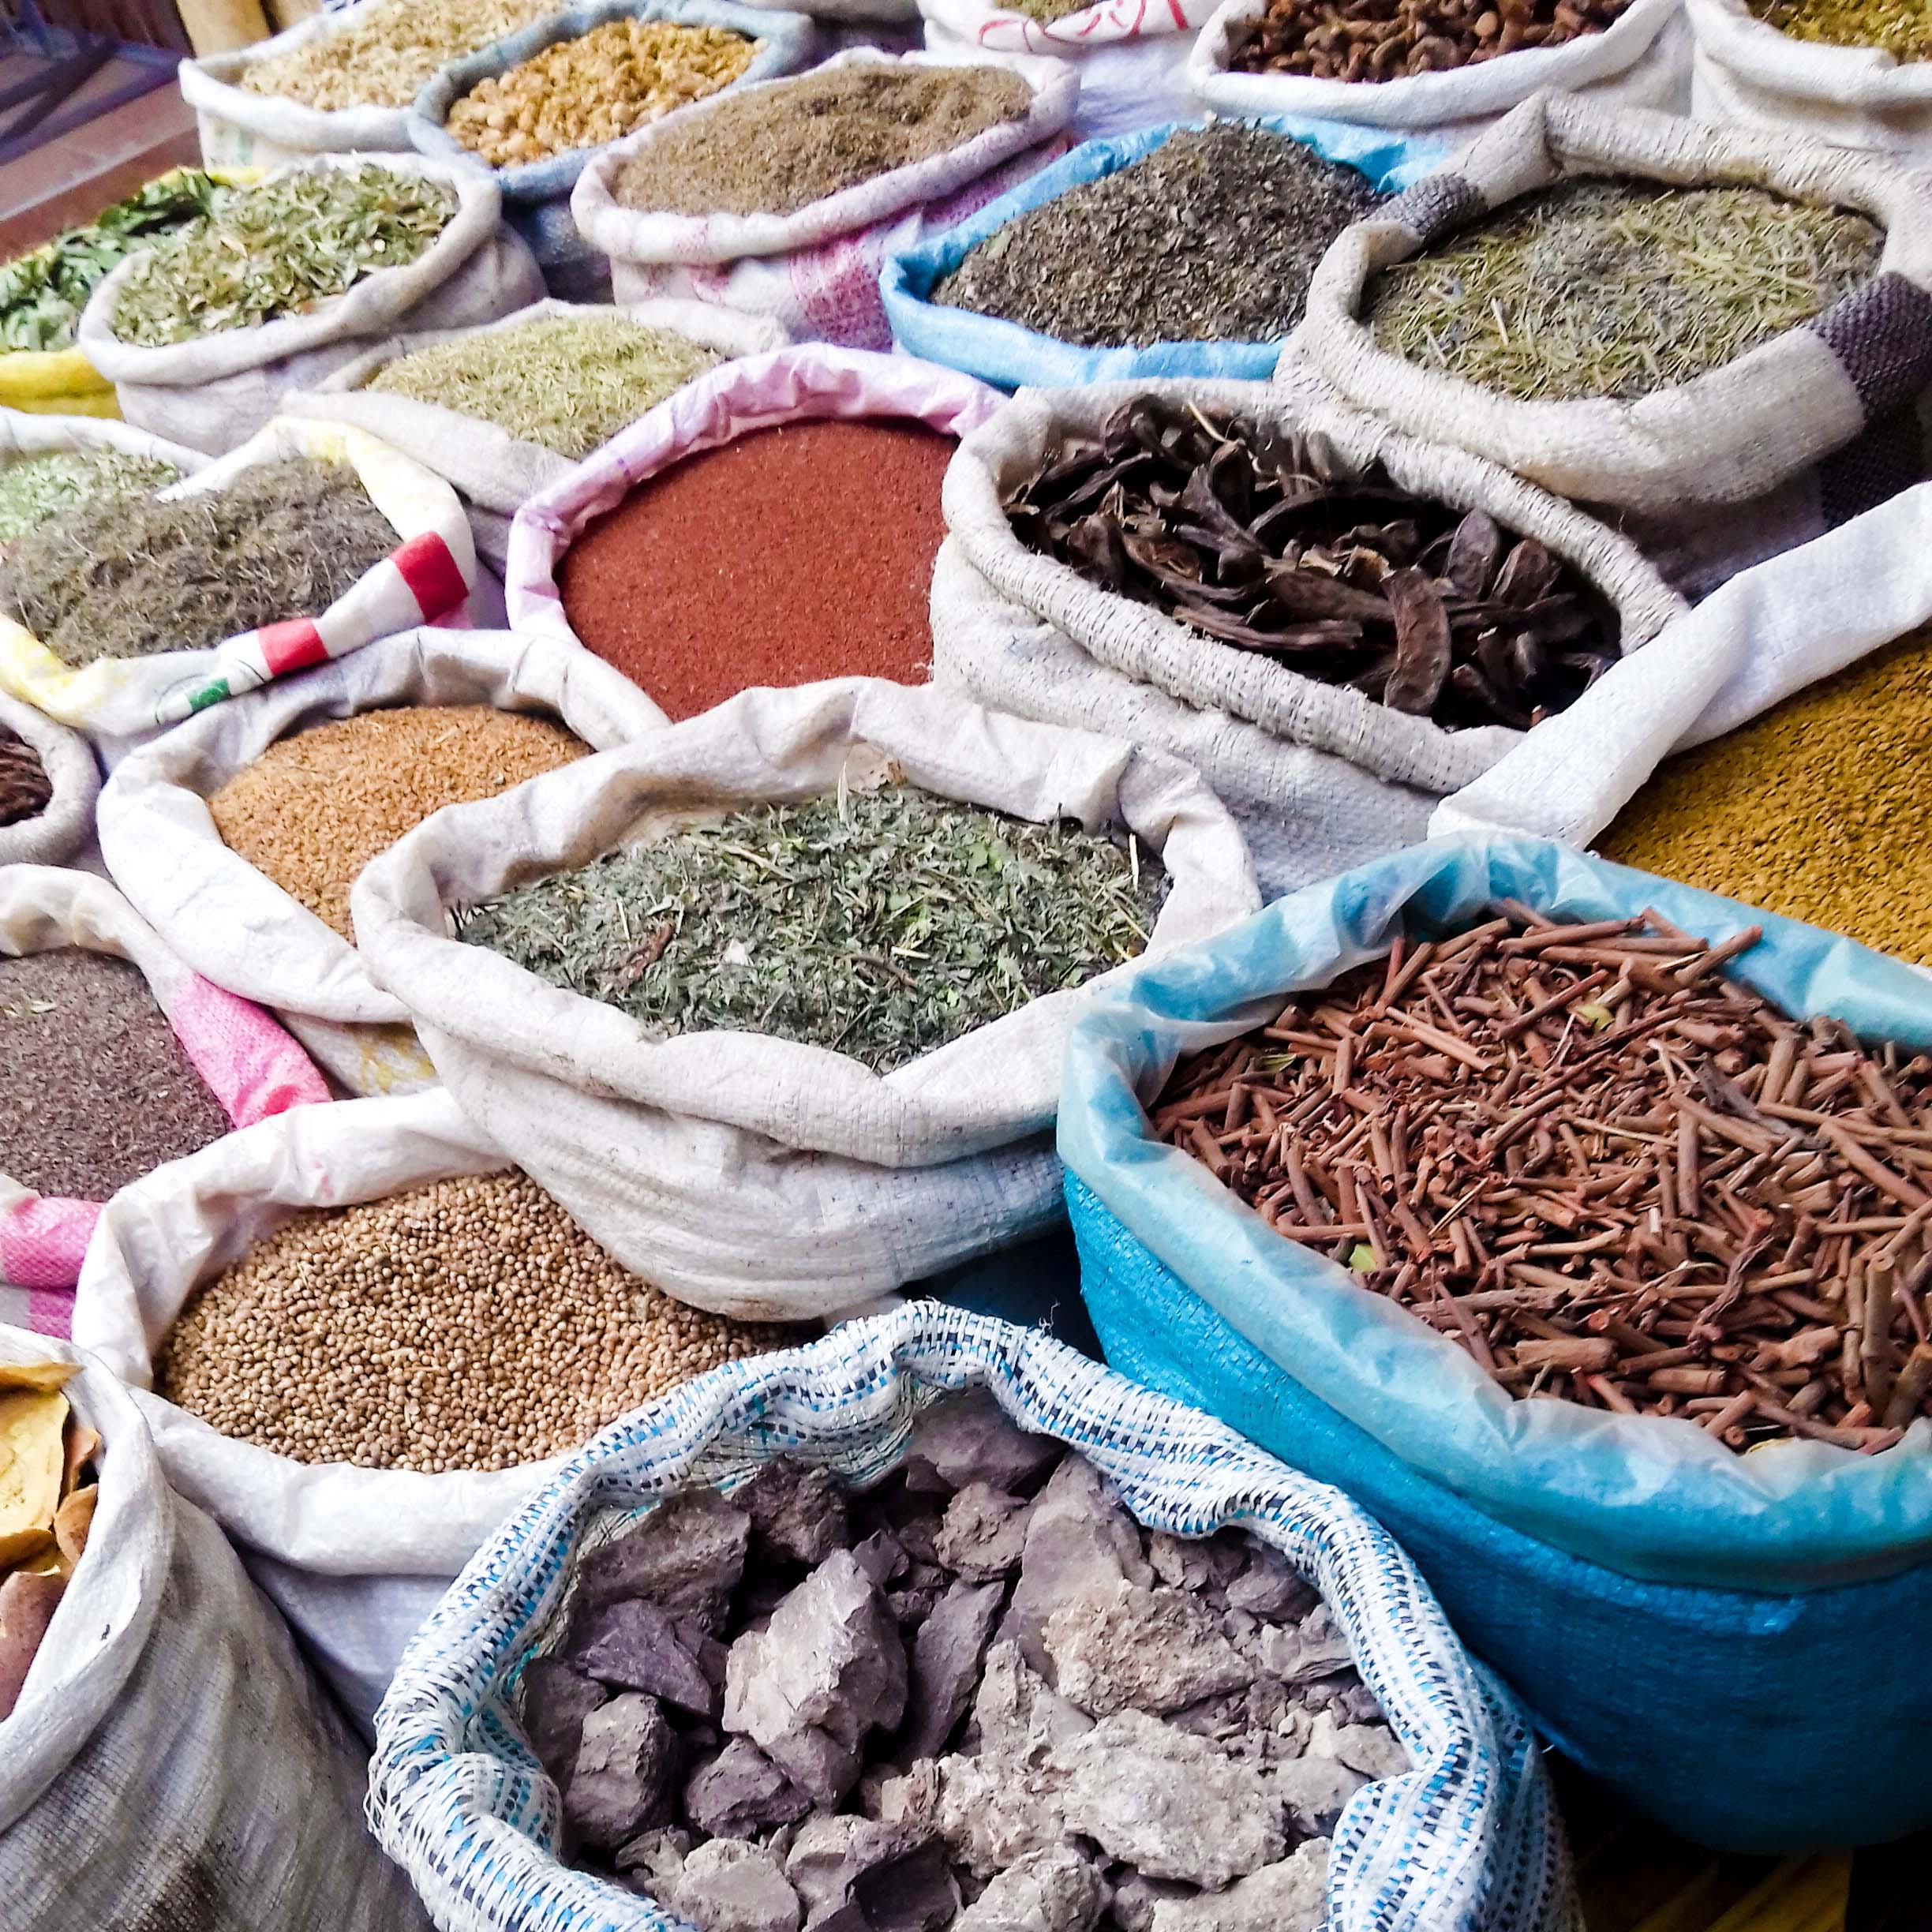 Exploration of home-grown nutritional supplements in Ethiopia